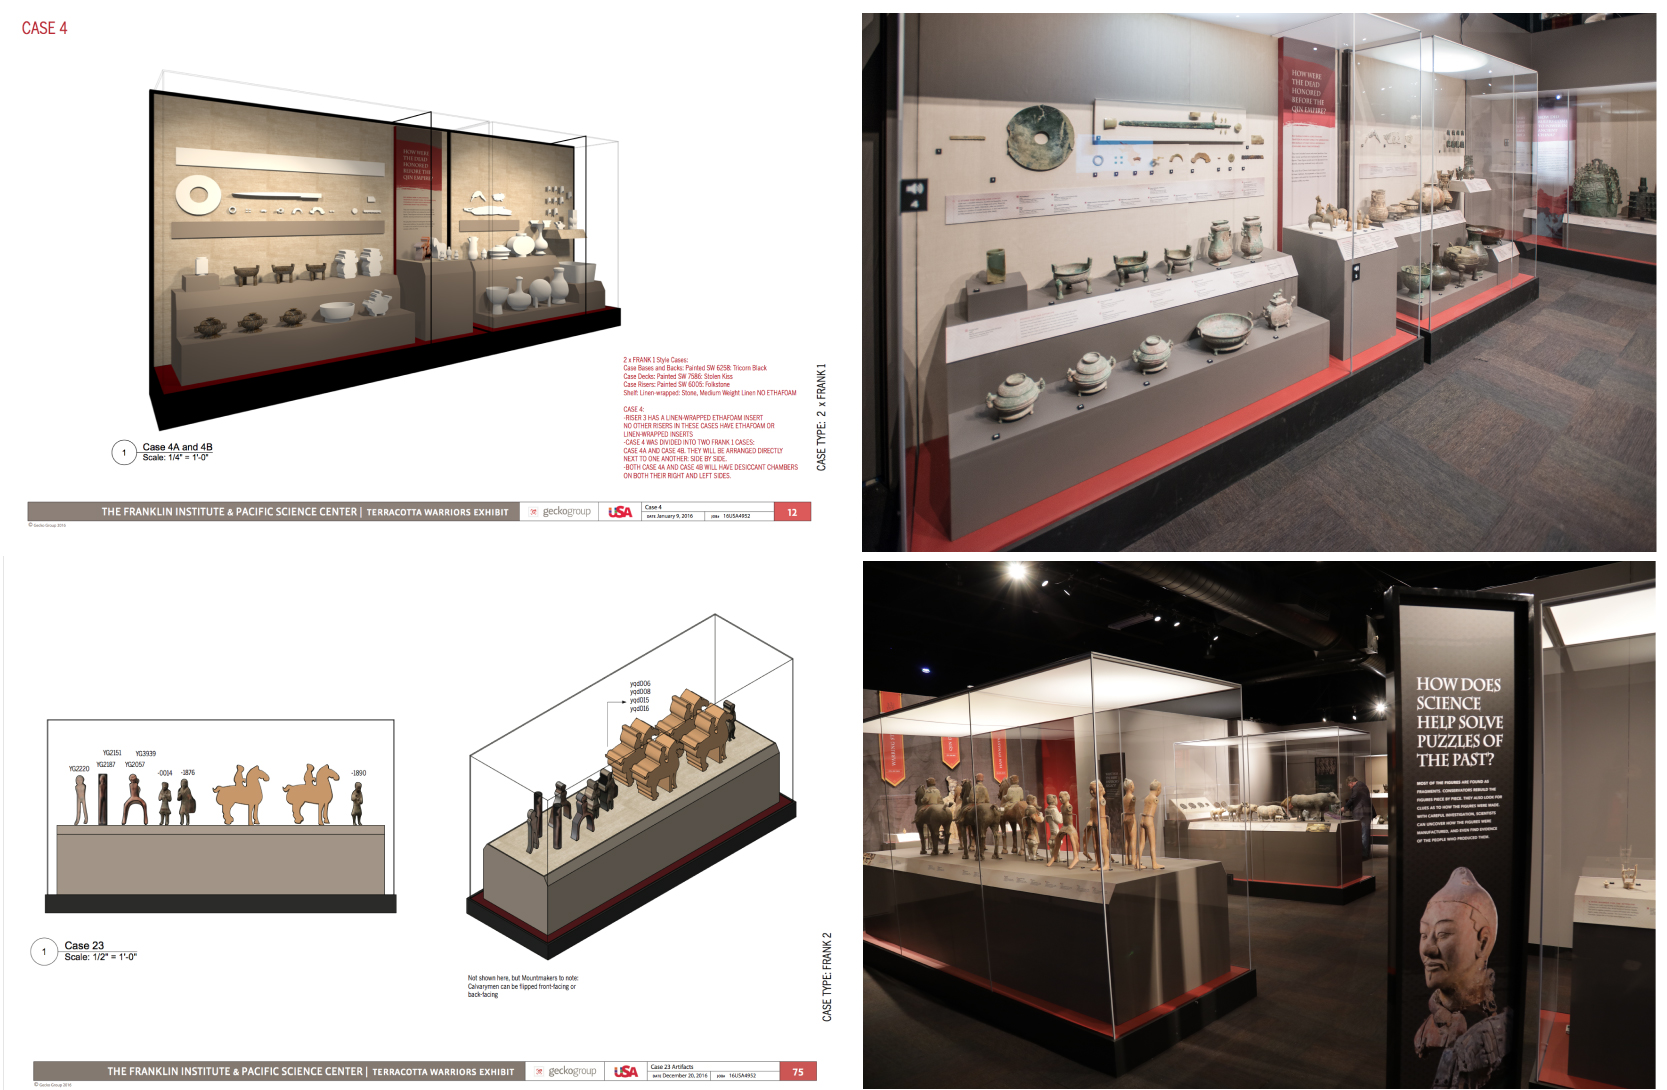 3d rendering of exhibit cases for Terracotta Warriors